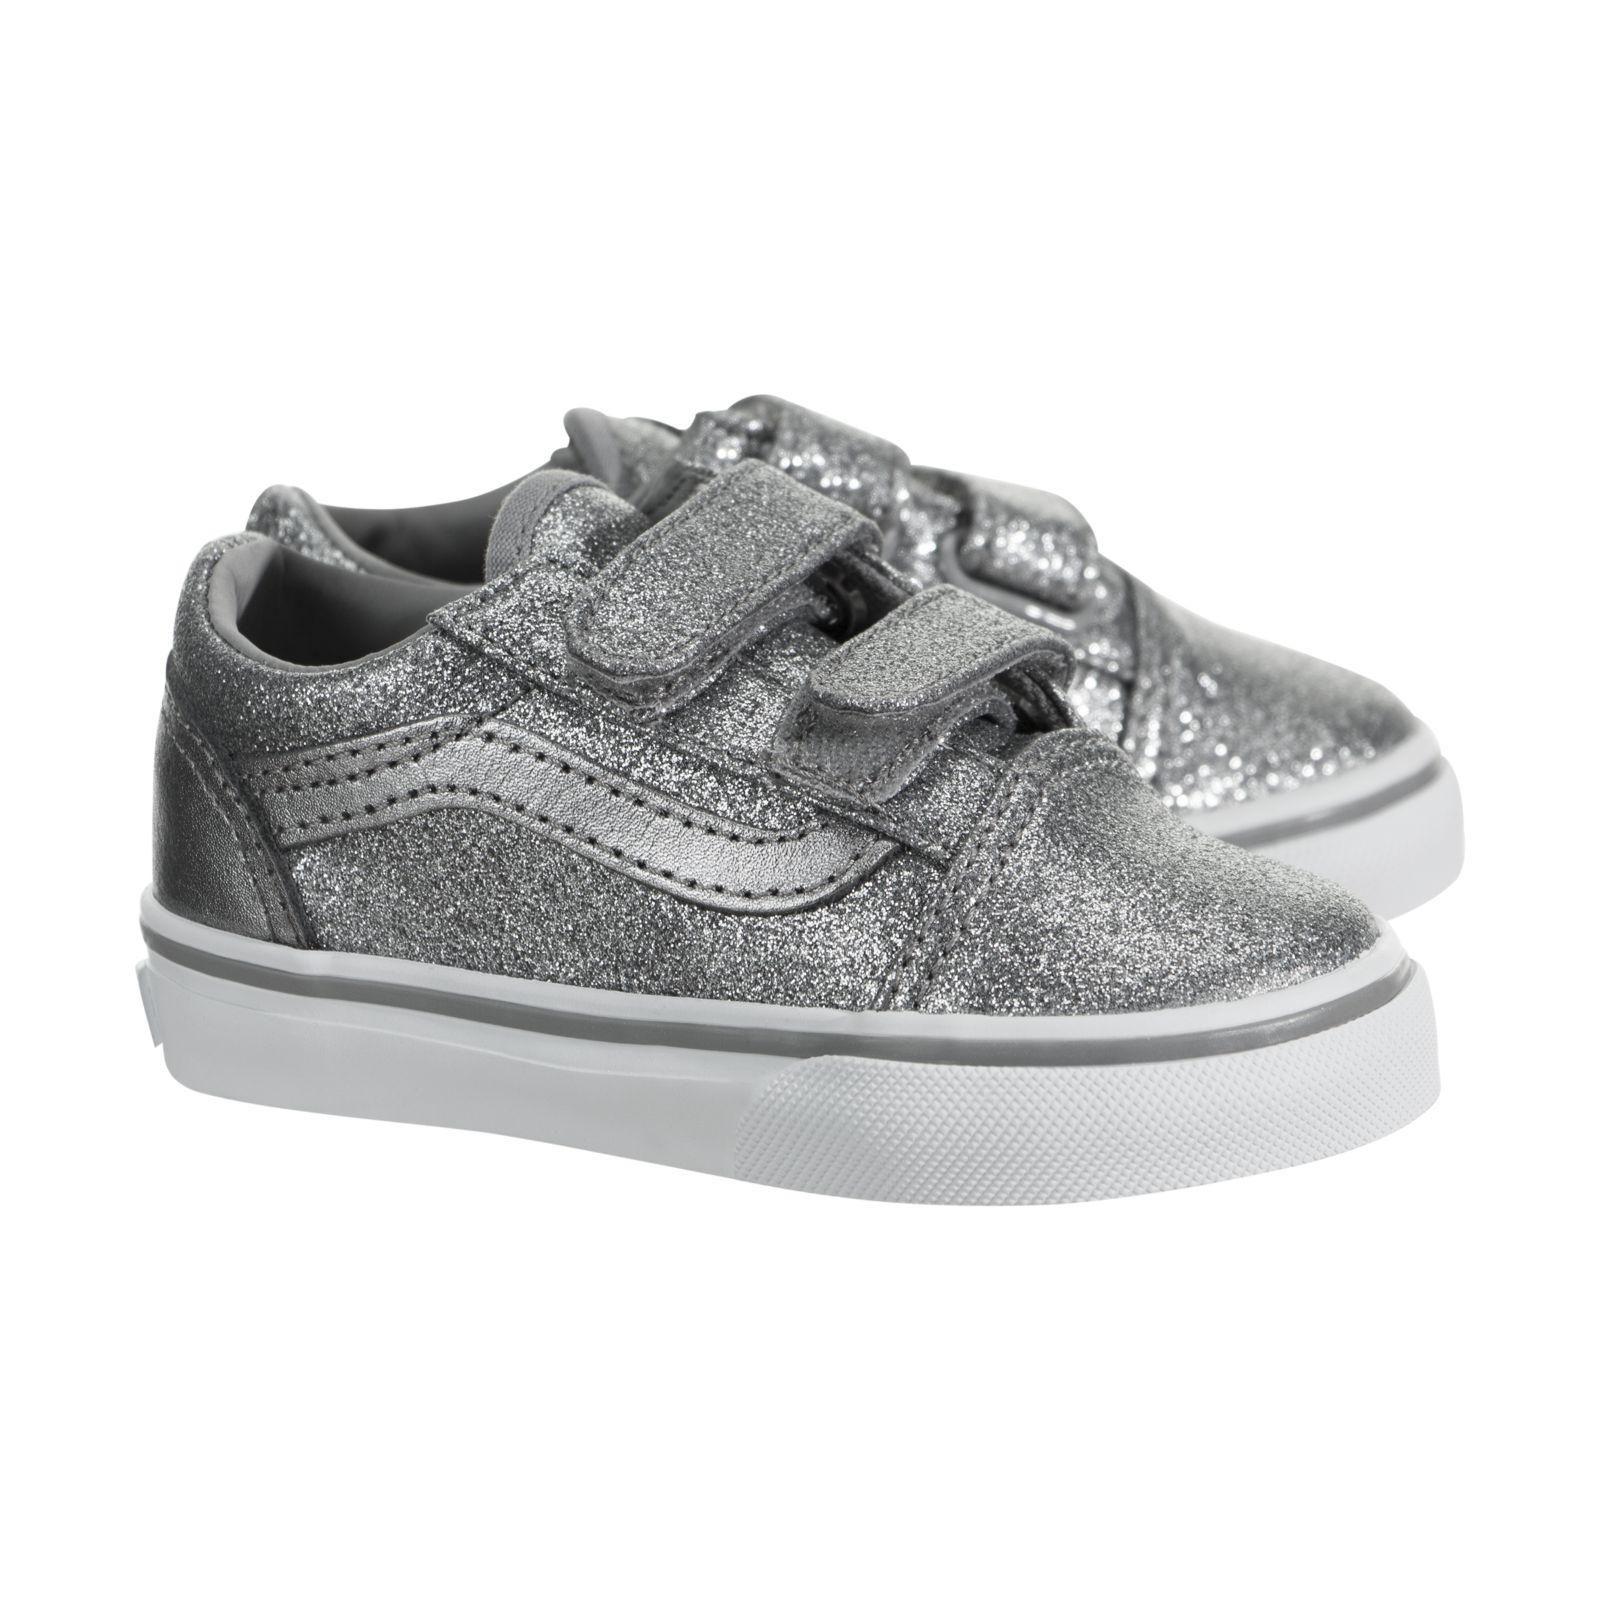 6f61d0c954ae4b VANS Toddlers Old Skool V Glitter Metallic Frost Gray Skate Shoe 10  Infants. About this product. Picture 1 of 5  Picture 2 of 5 ...